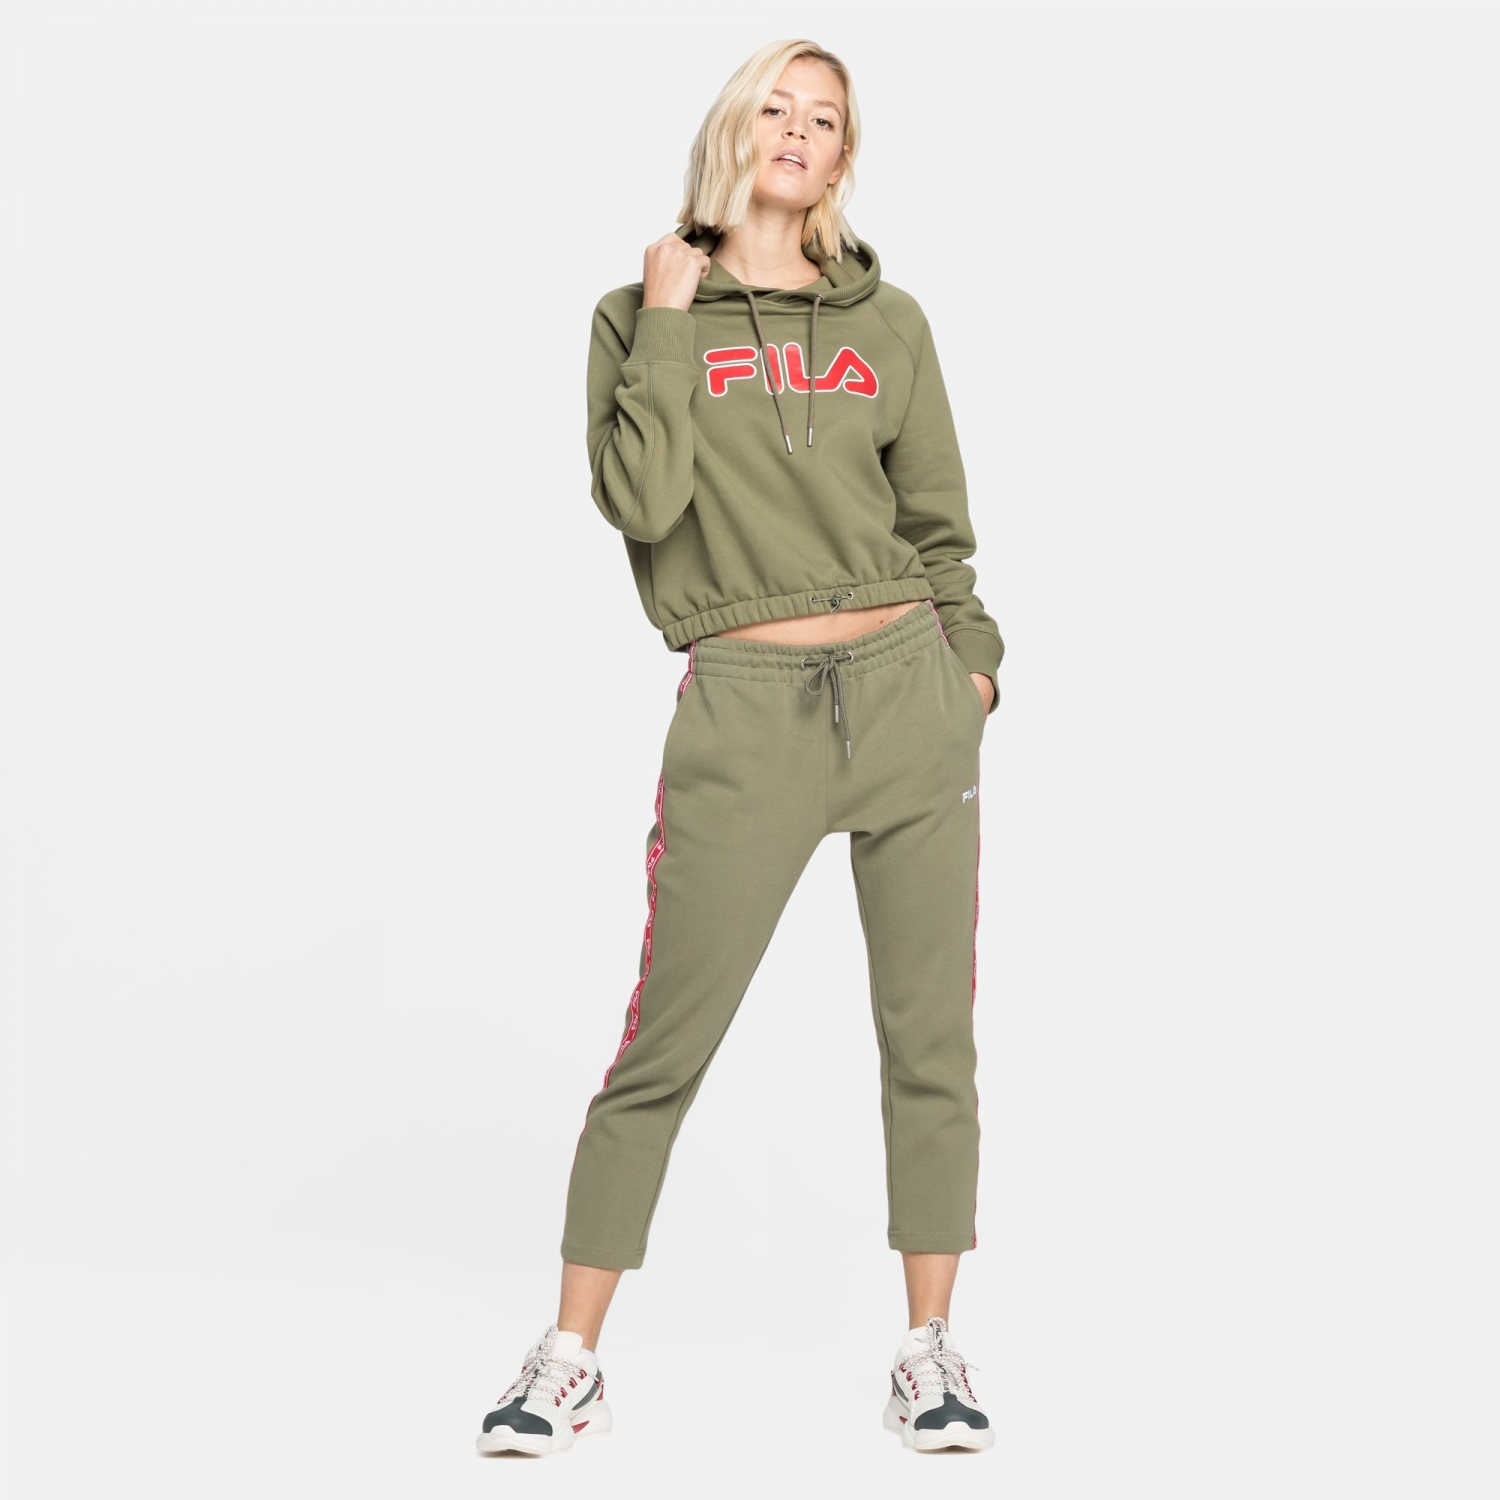 Fila Urvi Sweat Pants Bild 3